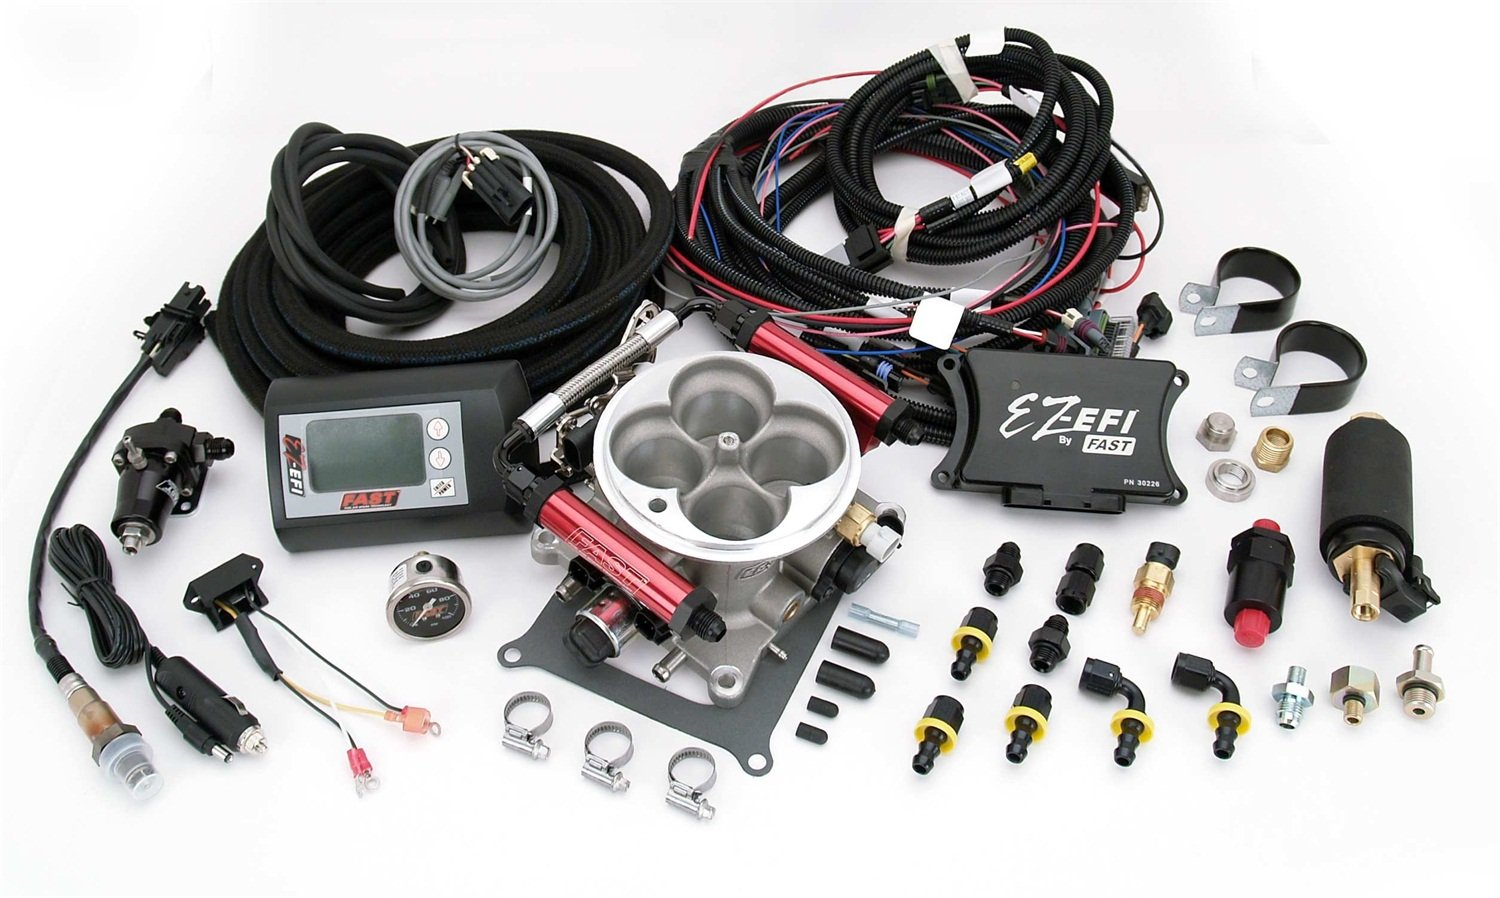 Cheap Gy6 Efi Fuel Injection, find Gy6 Efi Fuel Injection